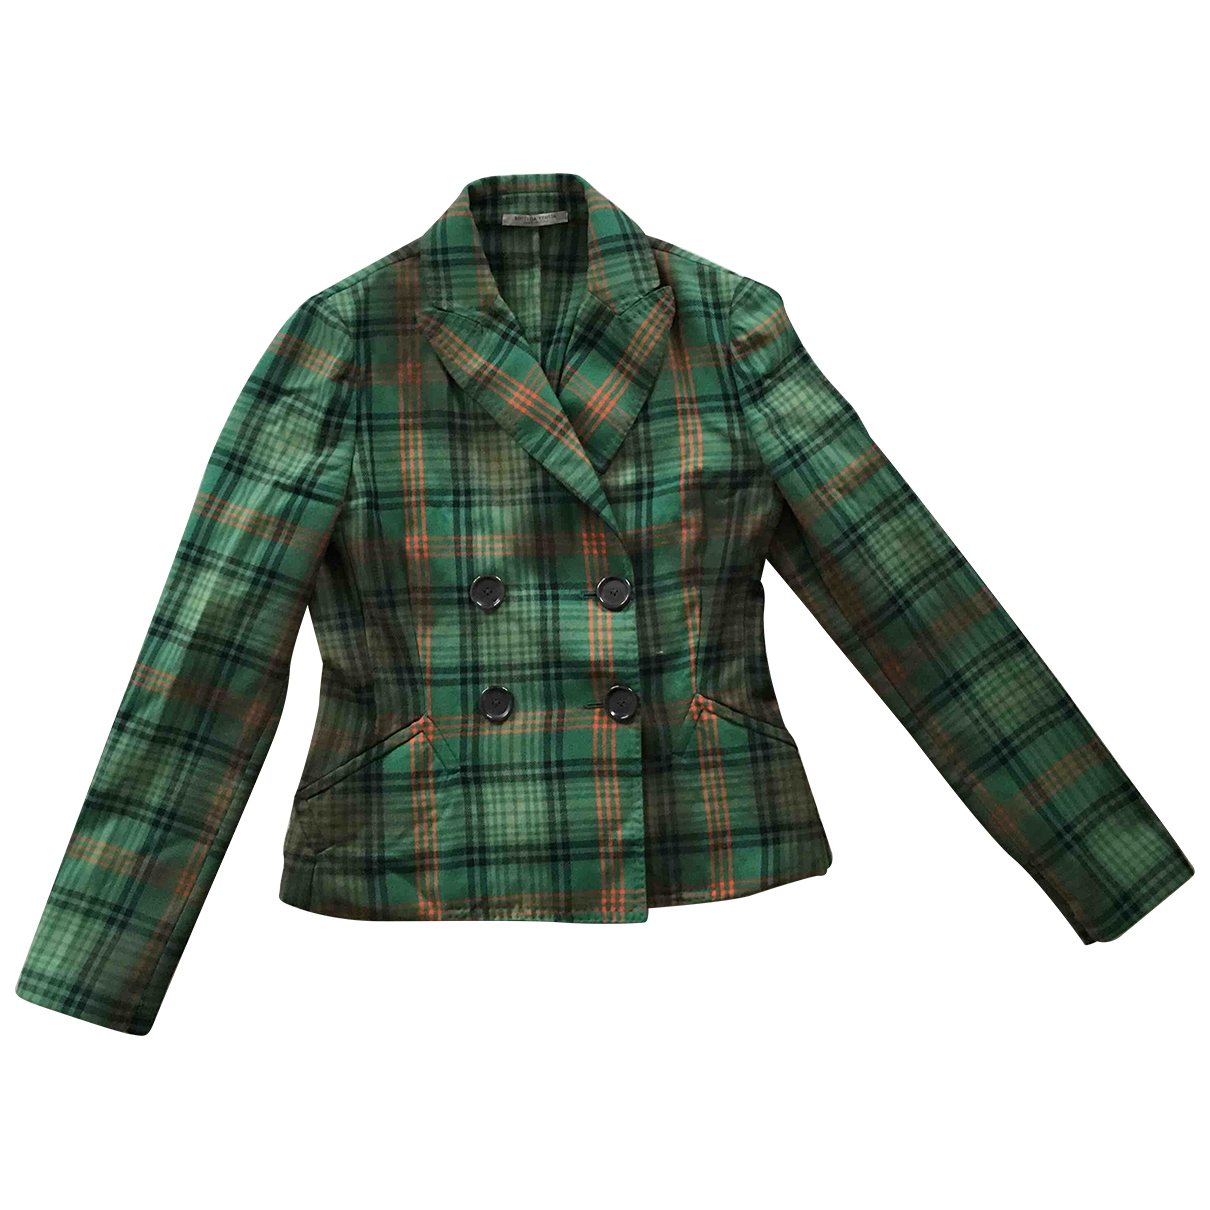 Bottega Veneta \N Green Wool jacket for Women 42 IT